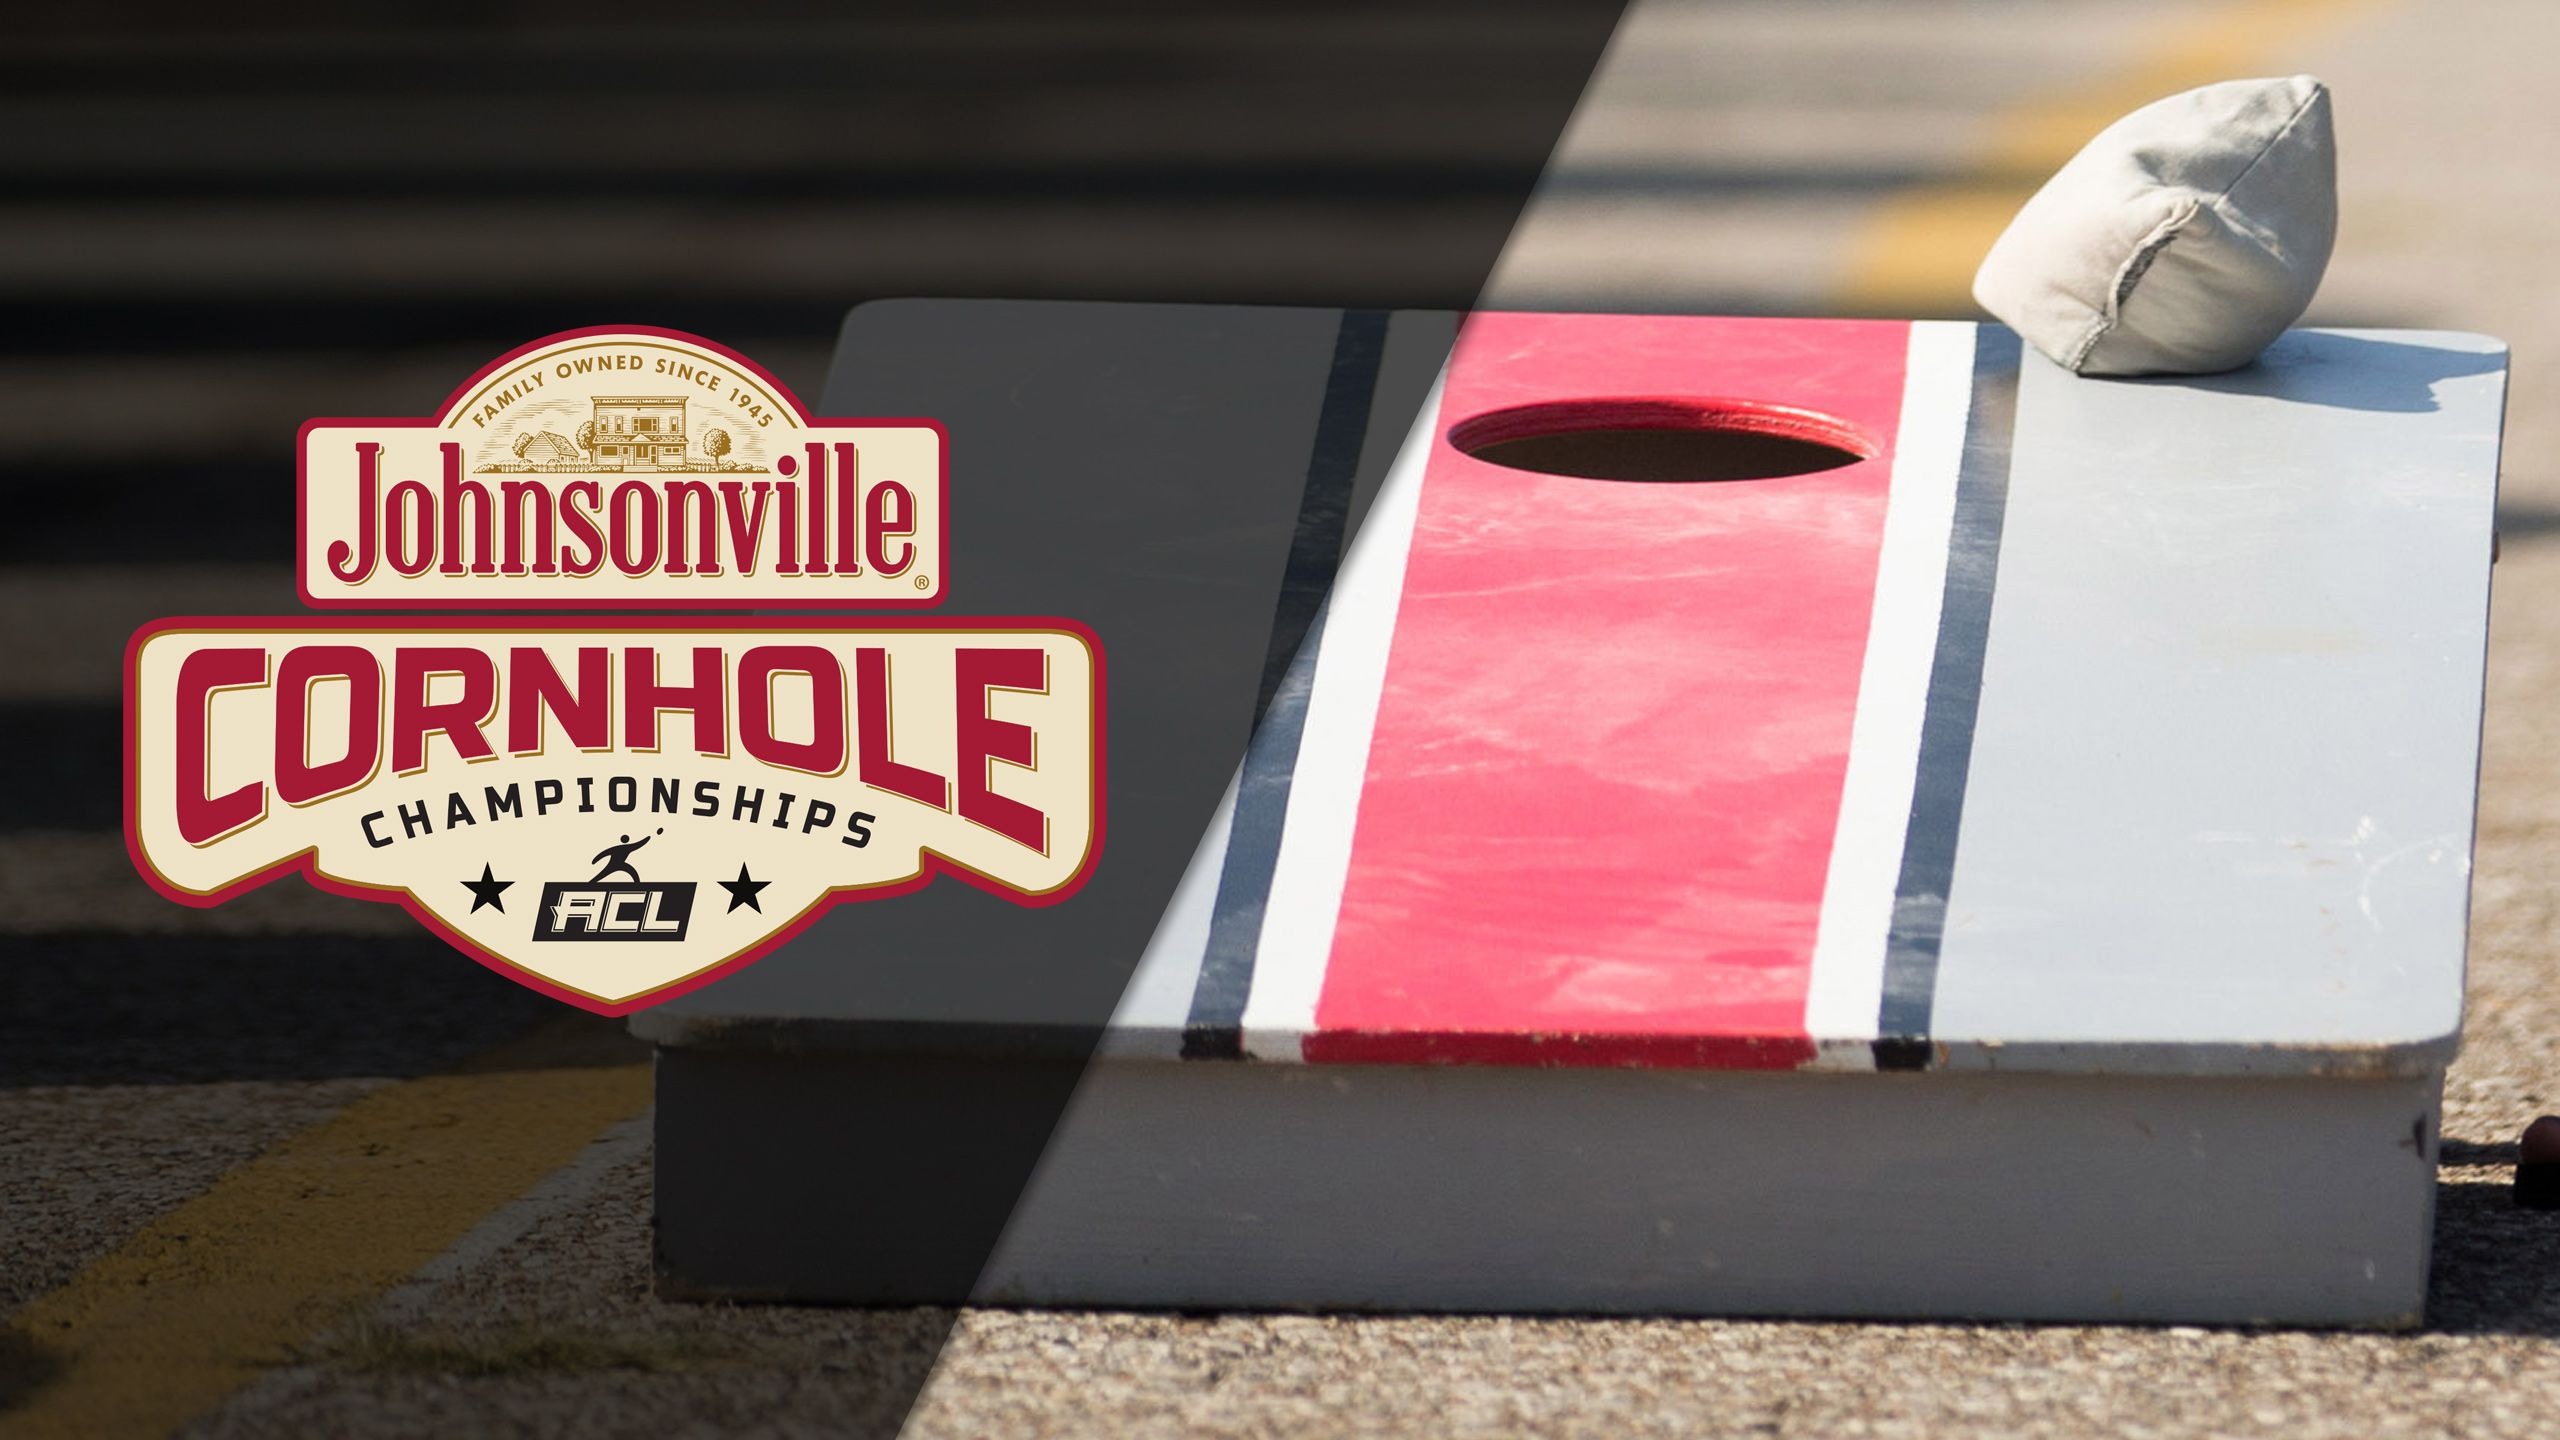 Johnsonville Cornhole Championships: ACL Final Chase